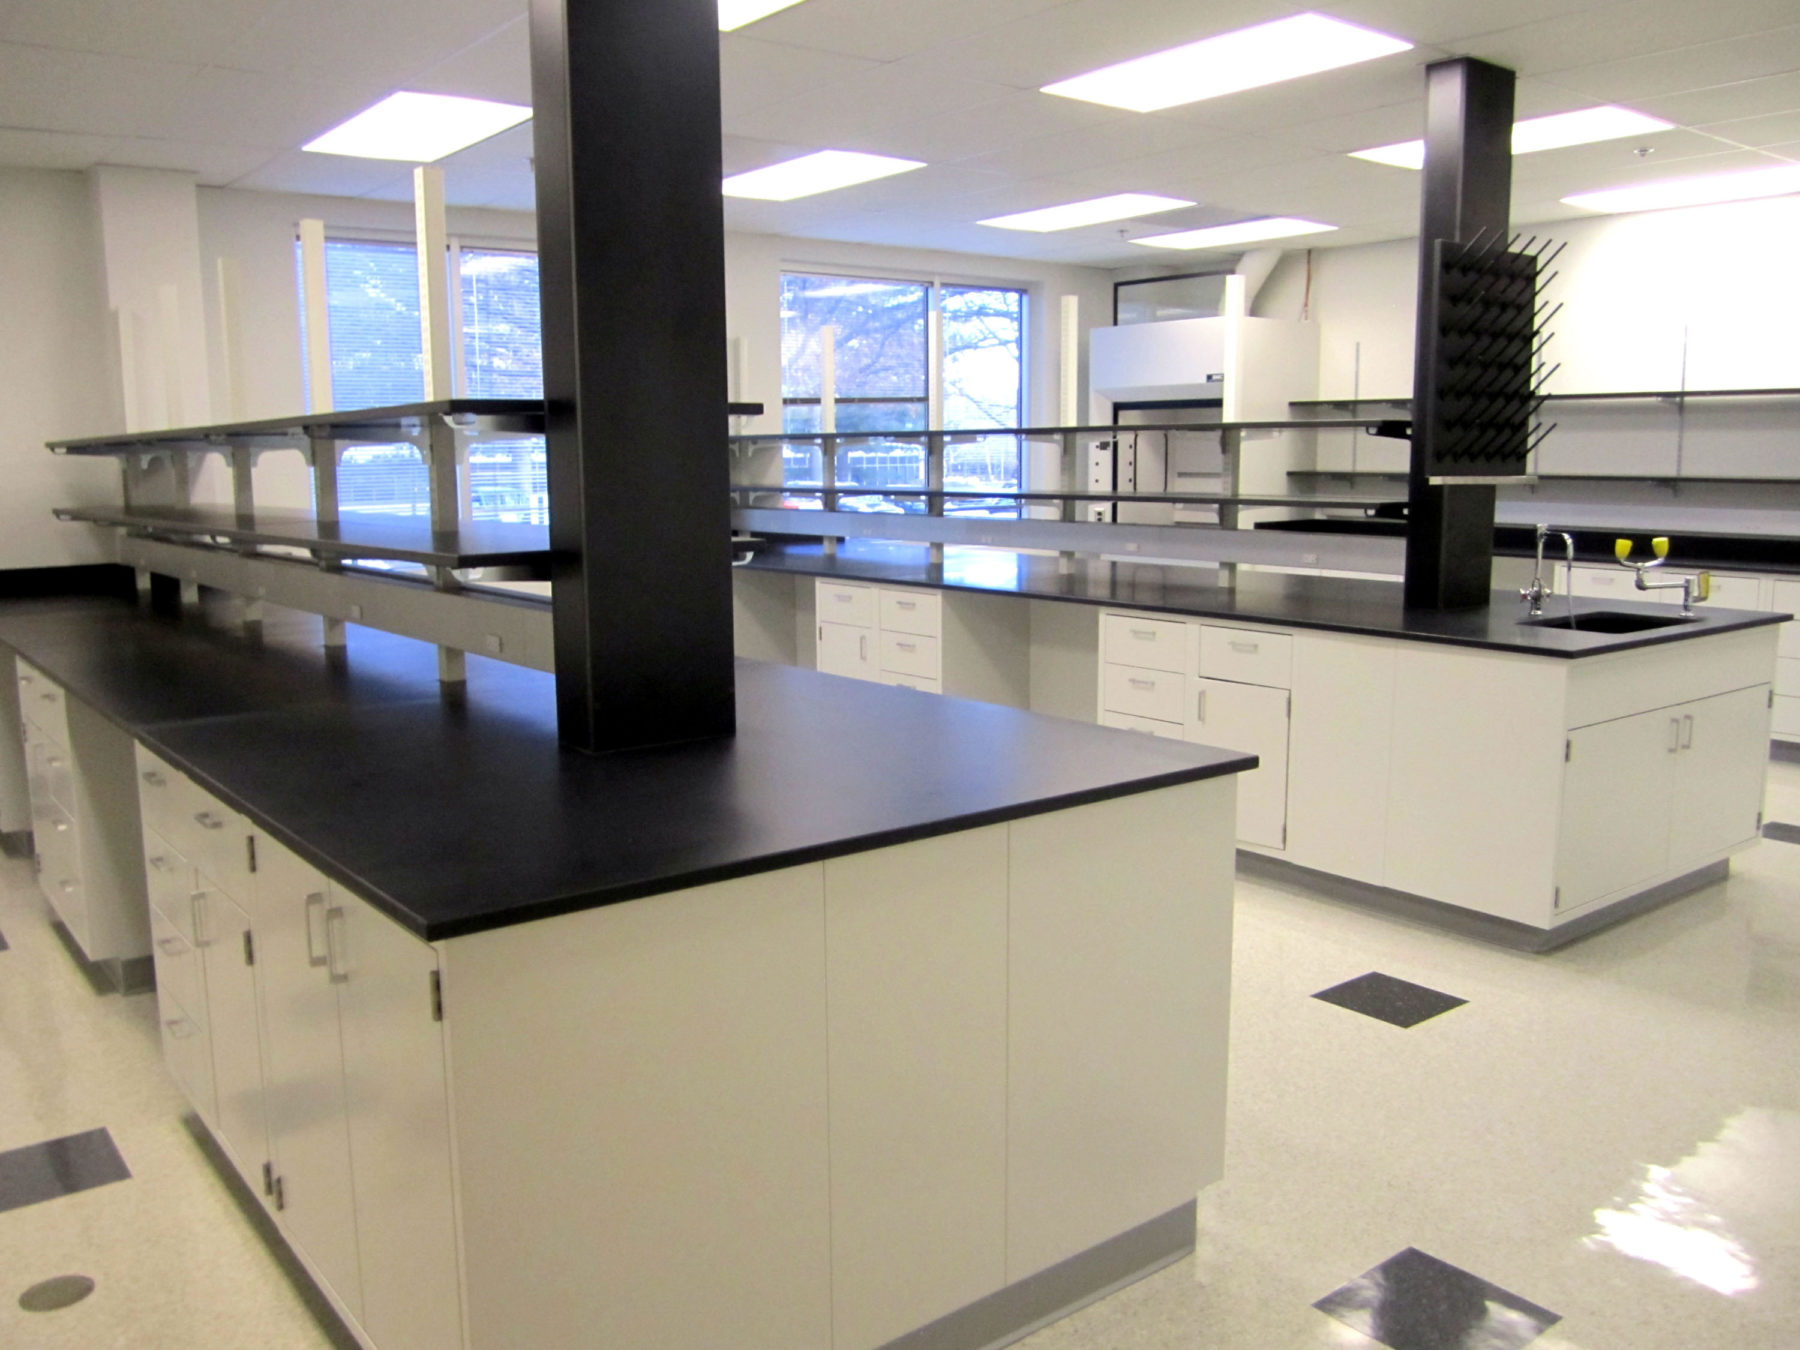 AREE Speculative Lab Space